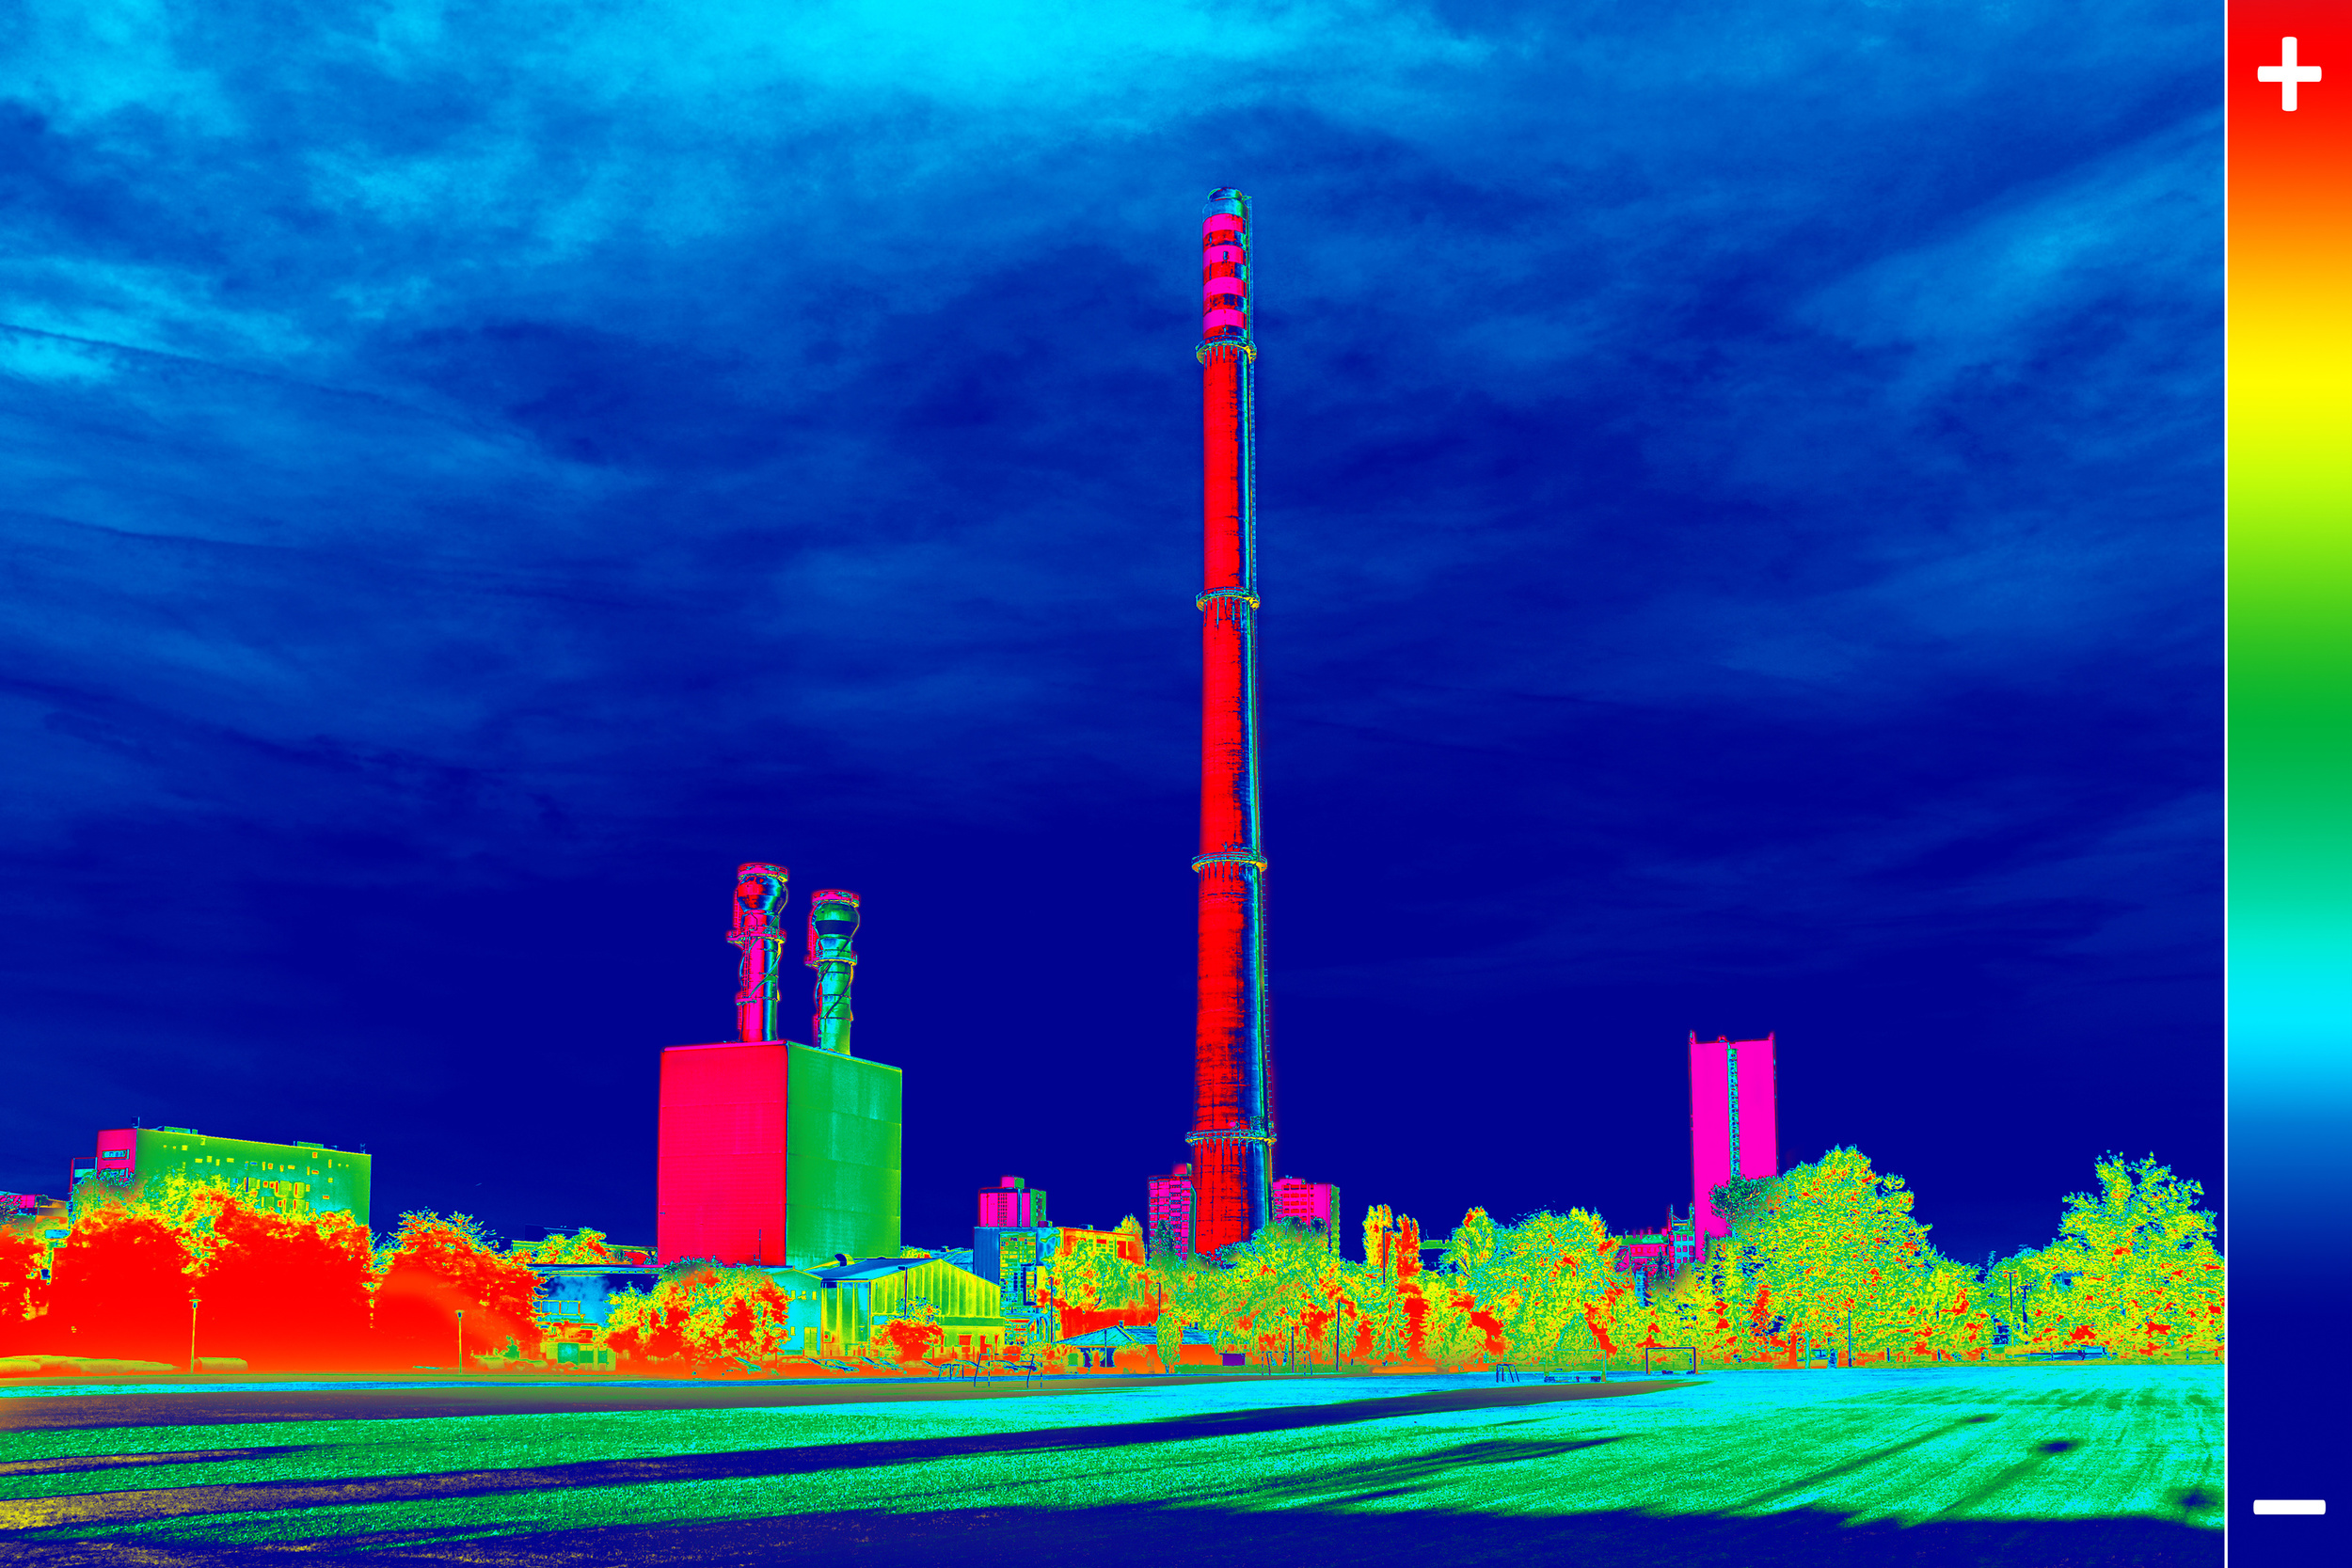 infrared image of power plant